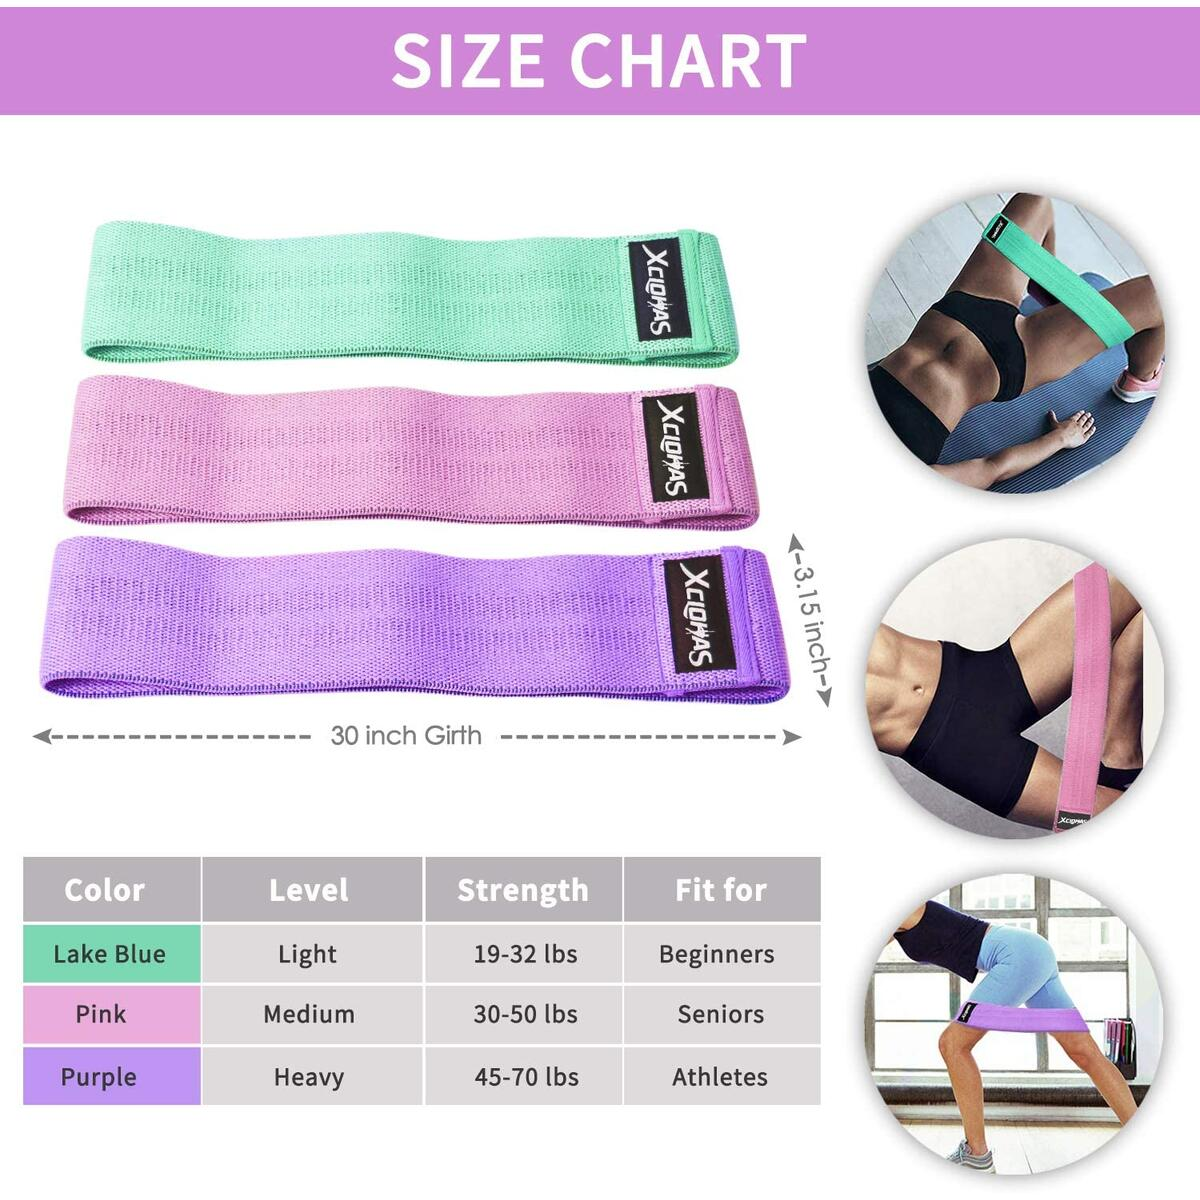 XCLOHAS Resistance Bands for Legs and Butt Thick Wide Non Slip Fabric Booty Bands Hip Exercise Bands for Women Squat Glute Hip Training with 3 Levels